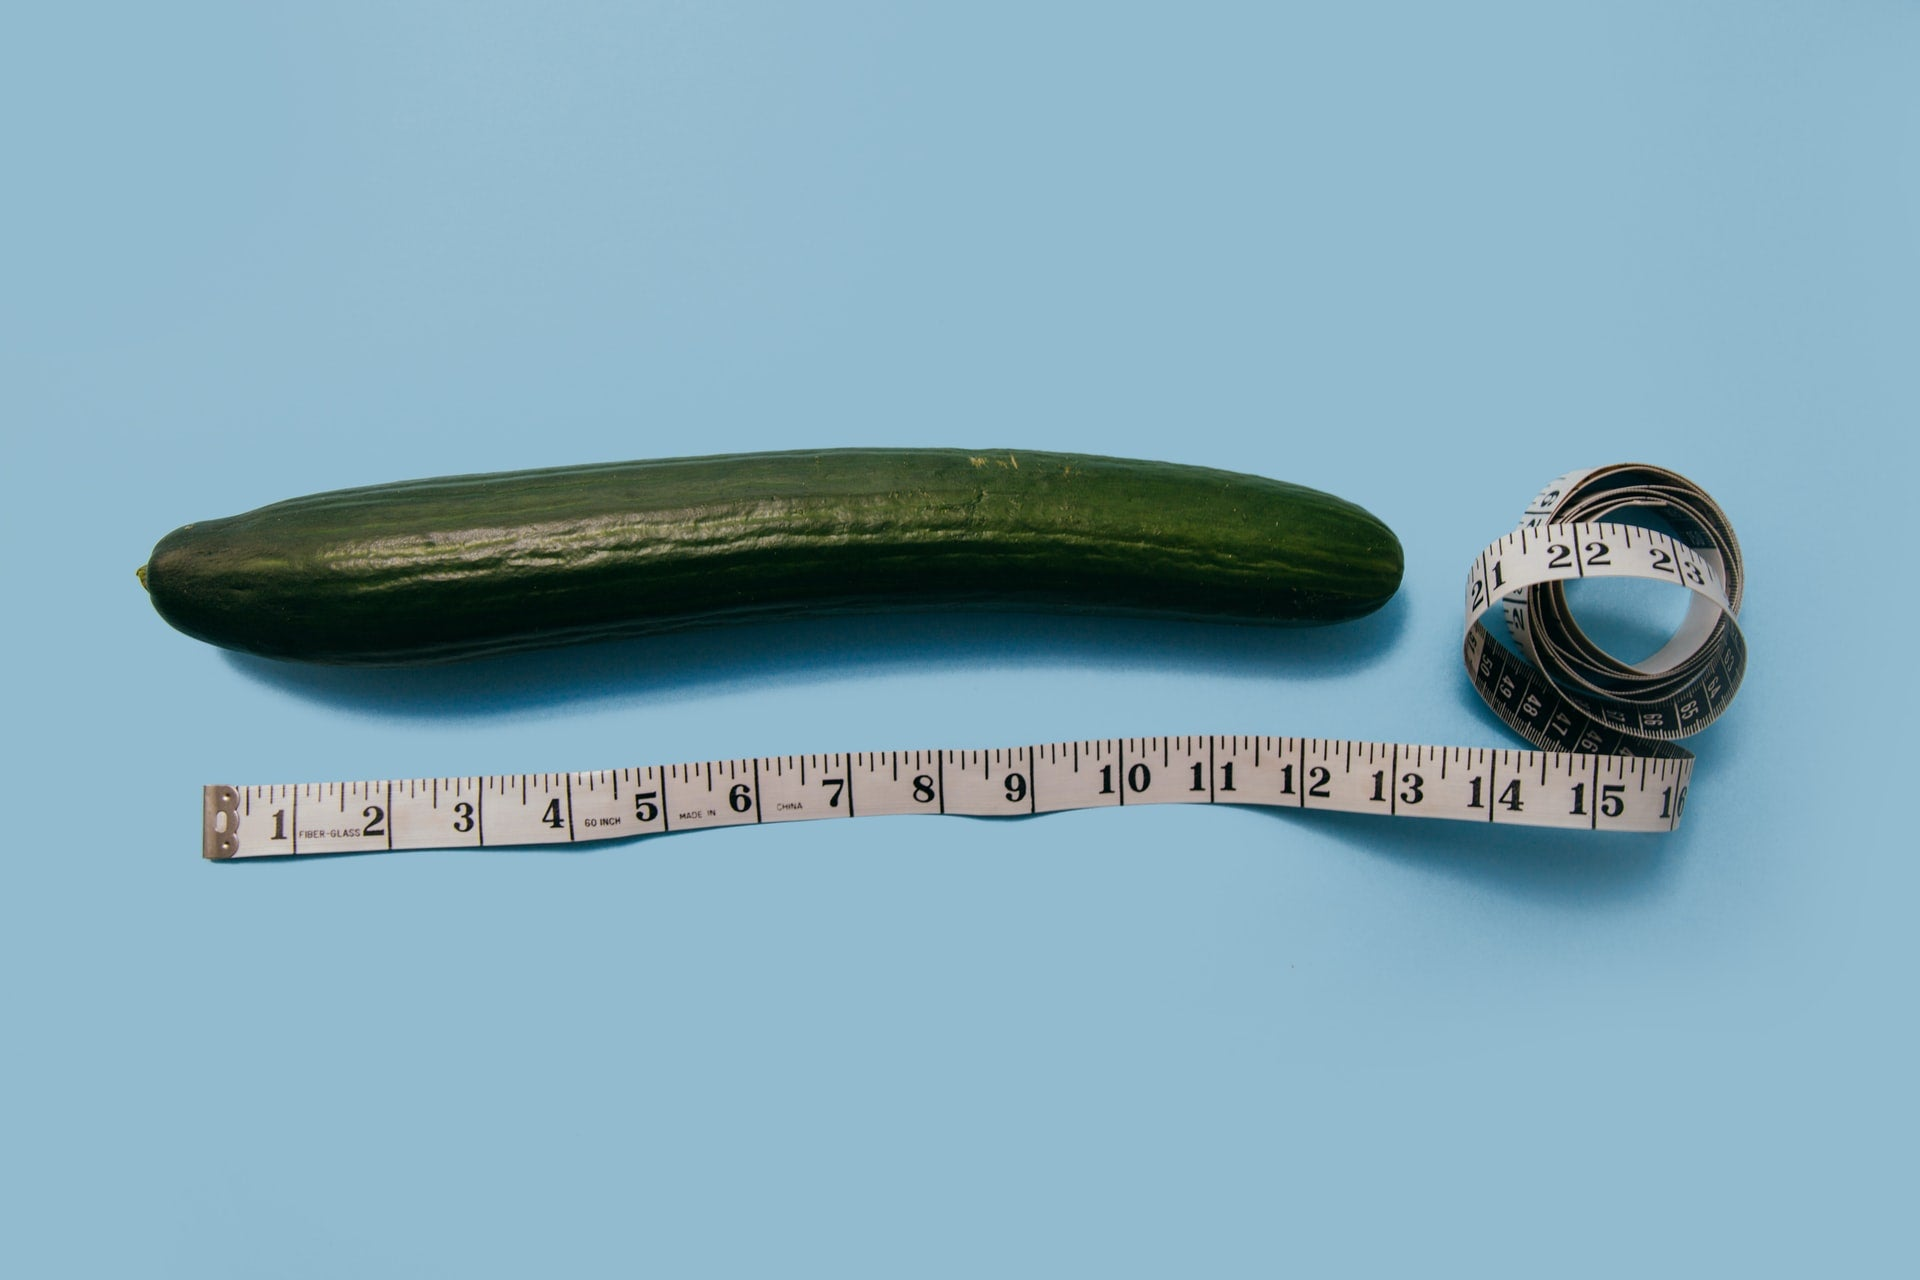 Cucumber and Tape Measure